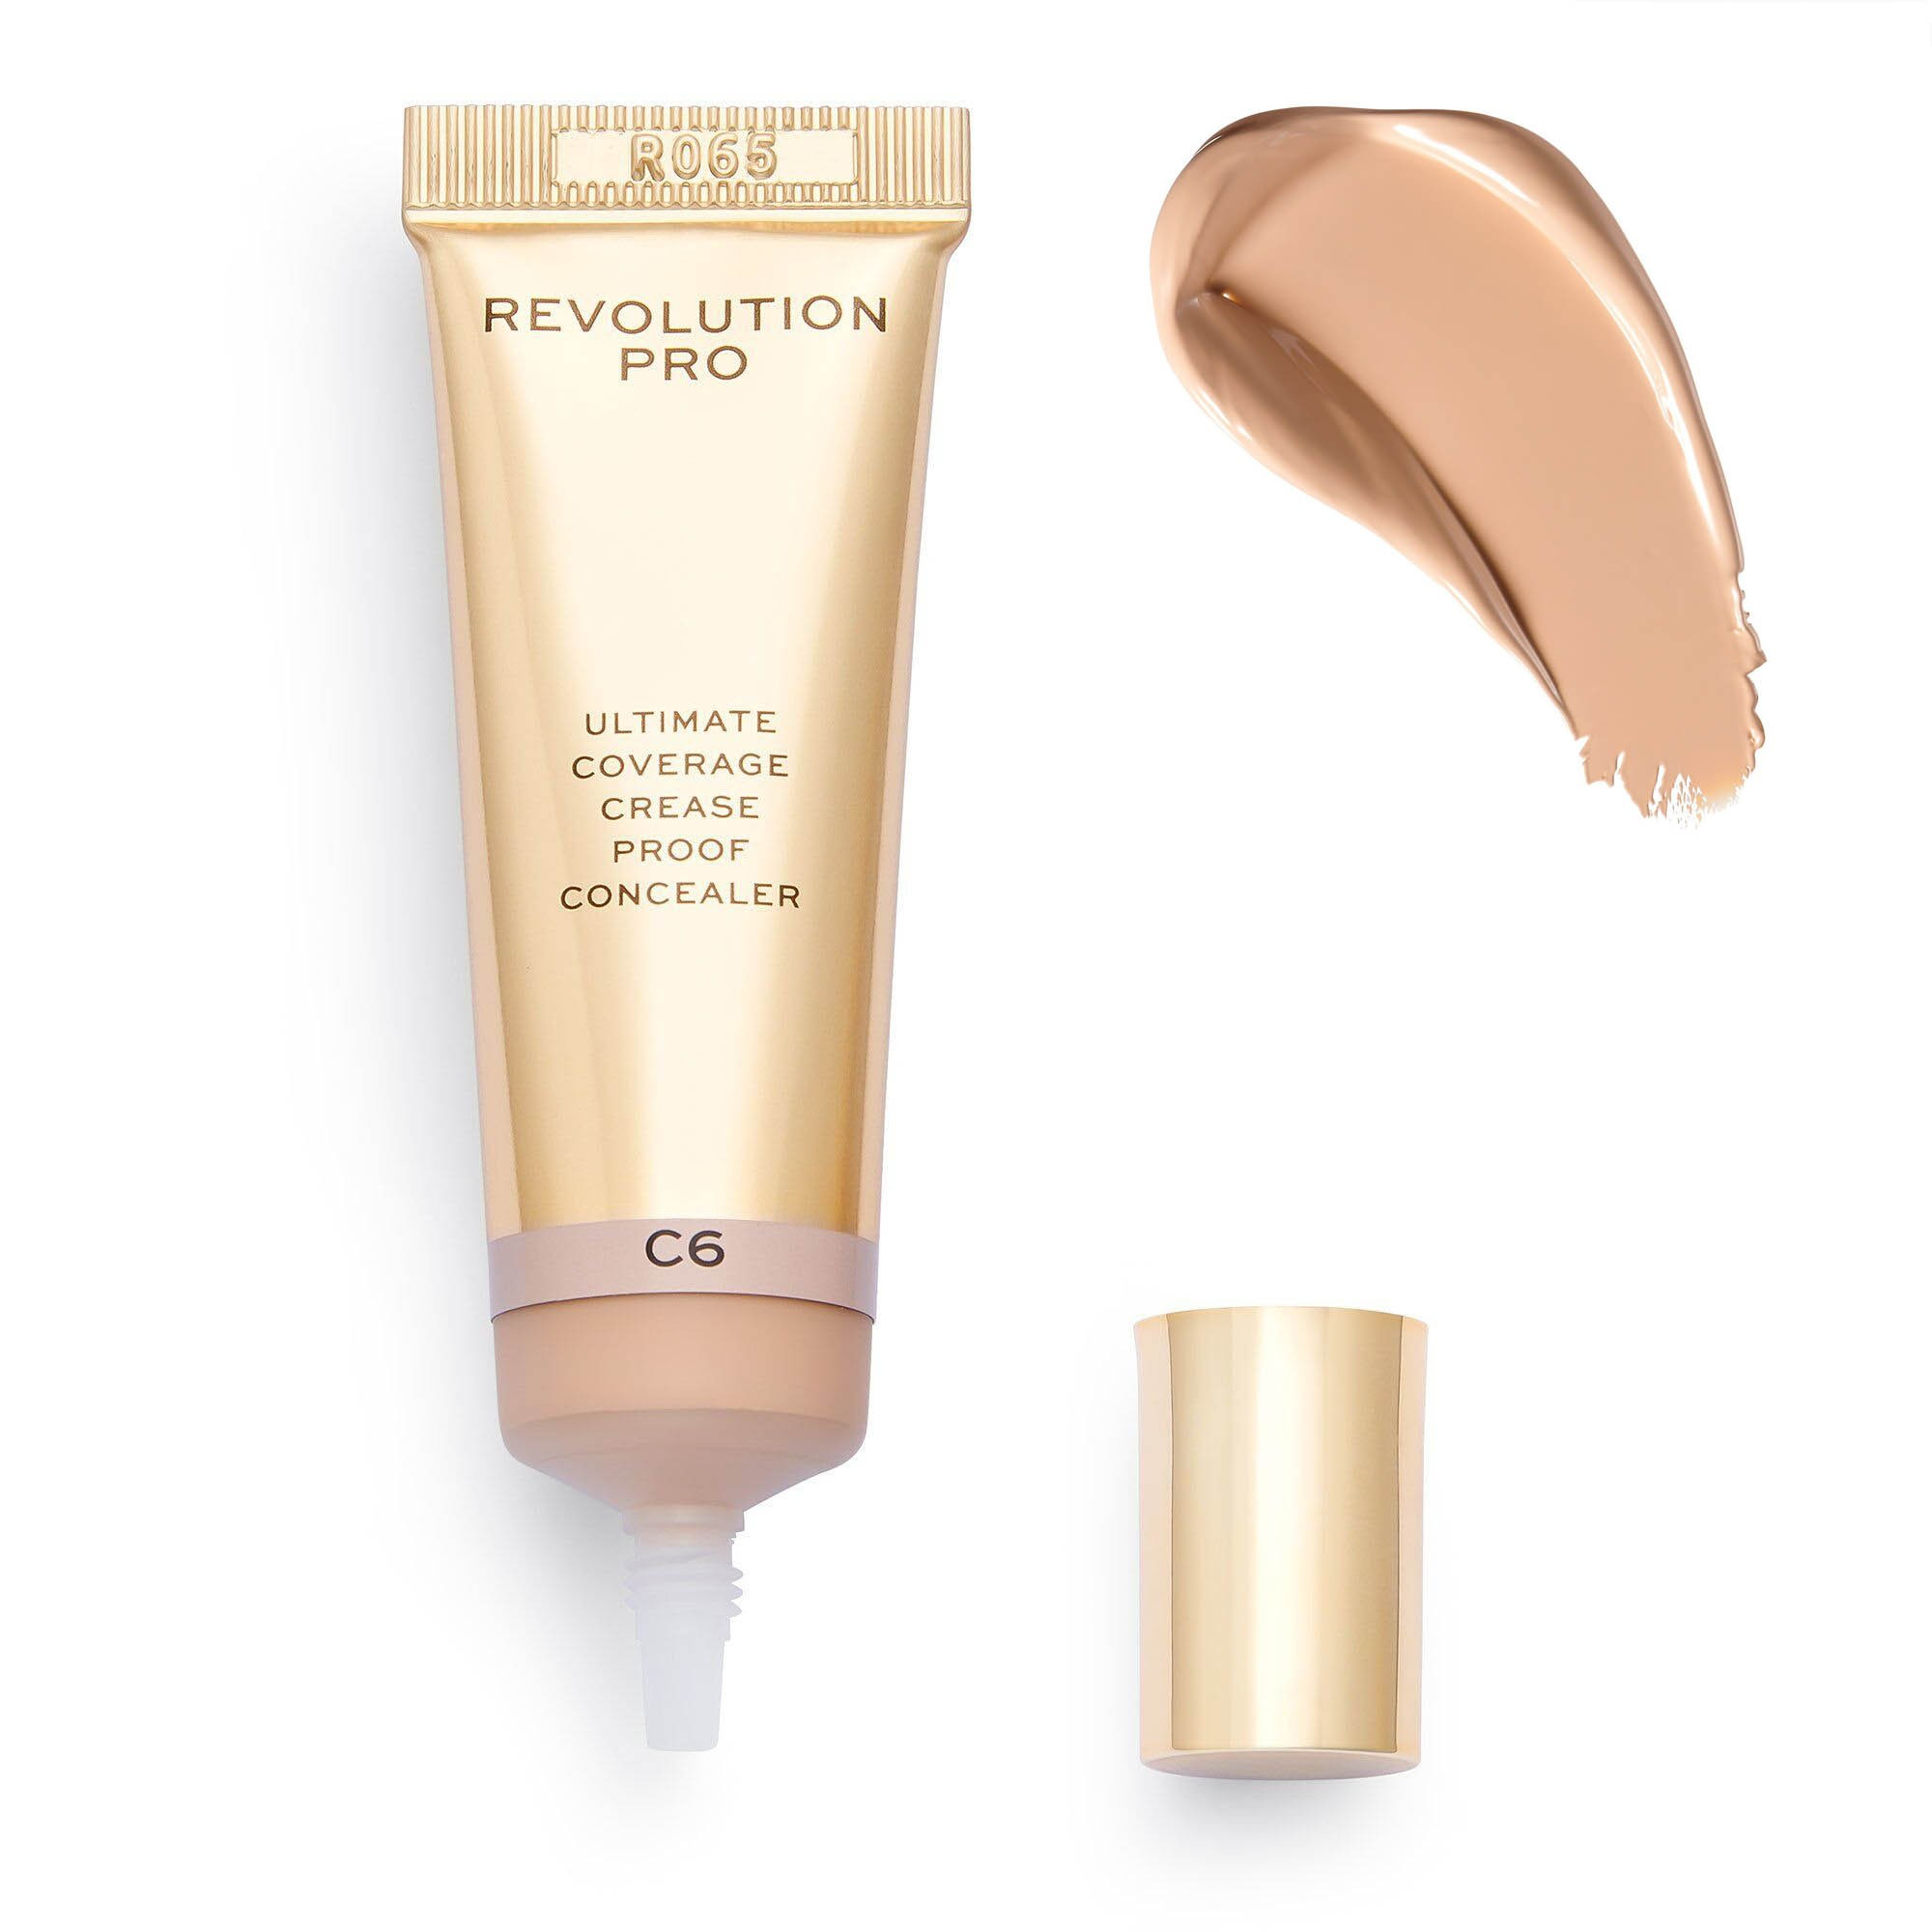 Flüssig-Concealer - Ultimate Coverage Crease Proof Concealer